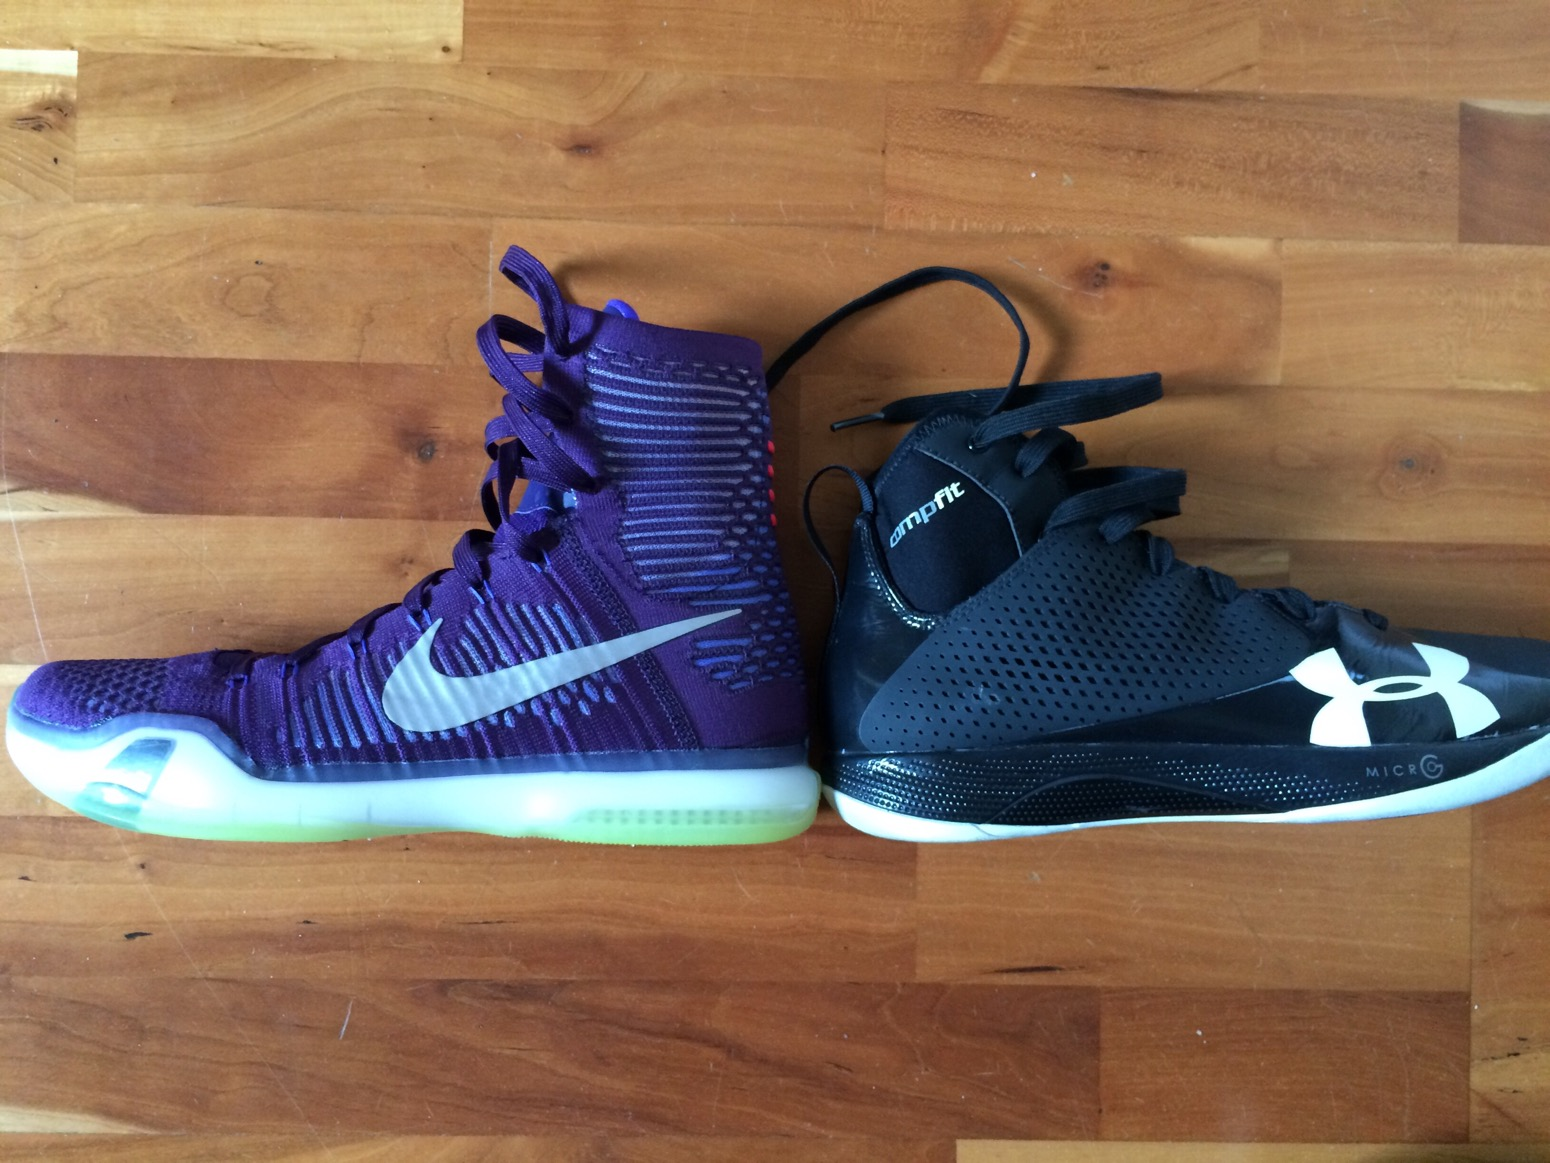 new product d81e8 fcfd9 Nike Kobe X 10 Elite Performance Review and Comparison  schw